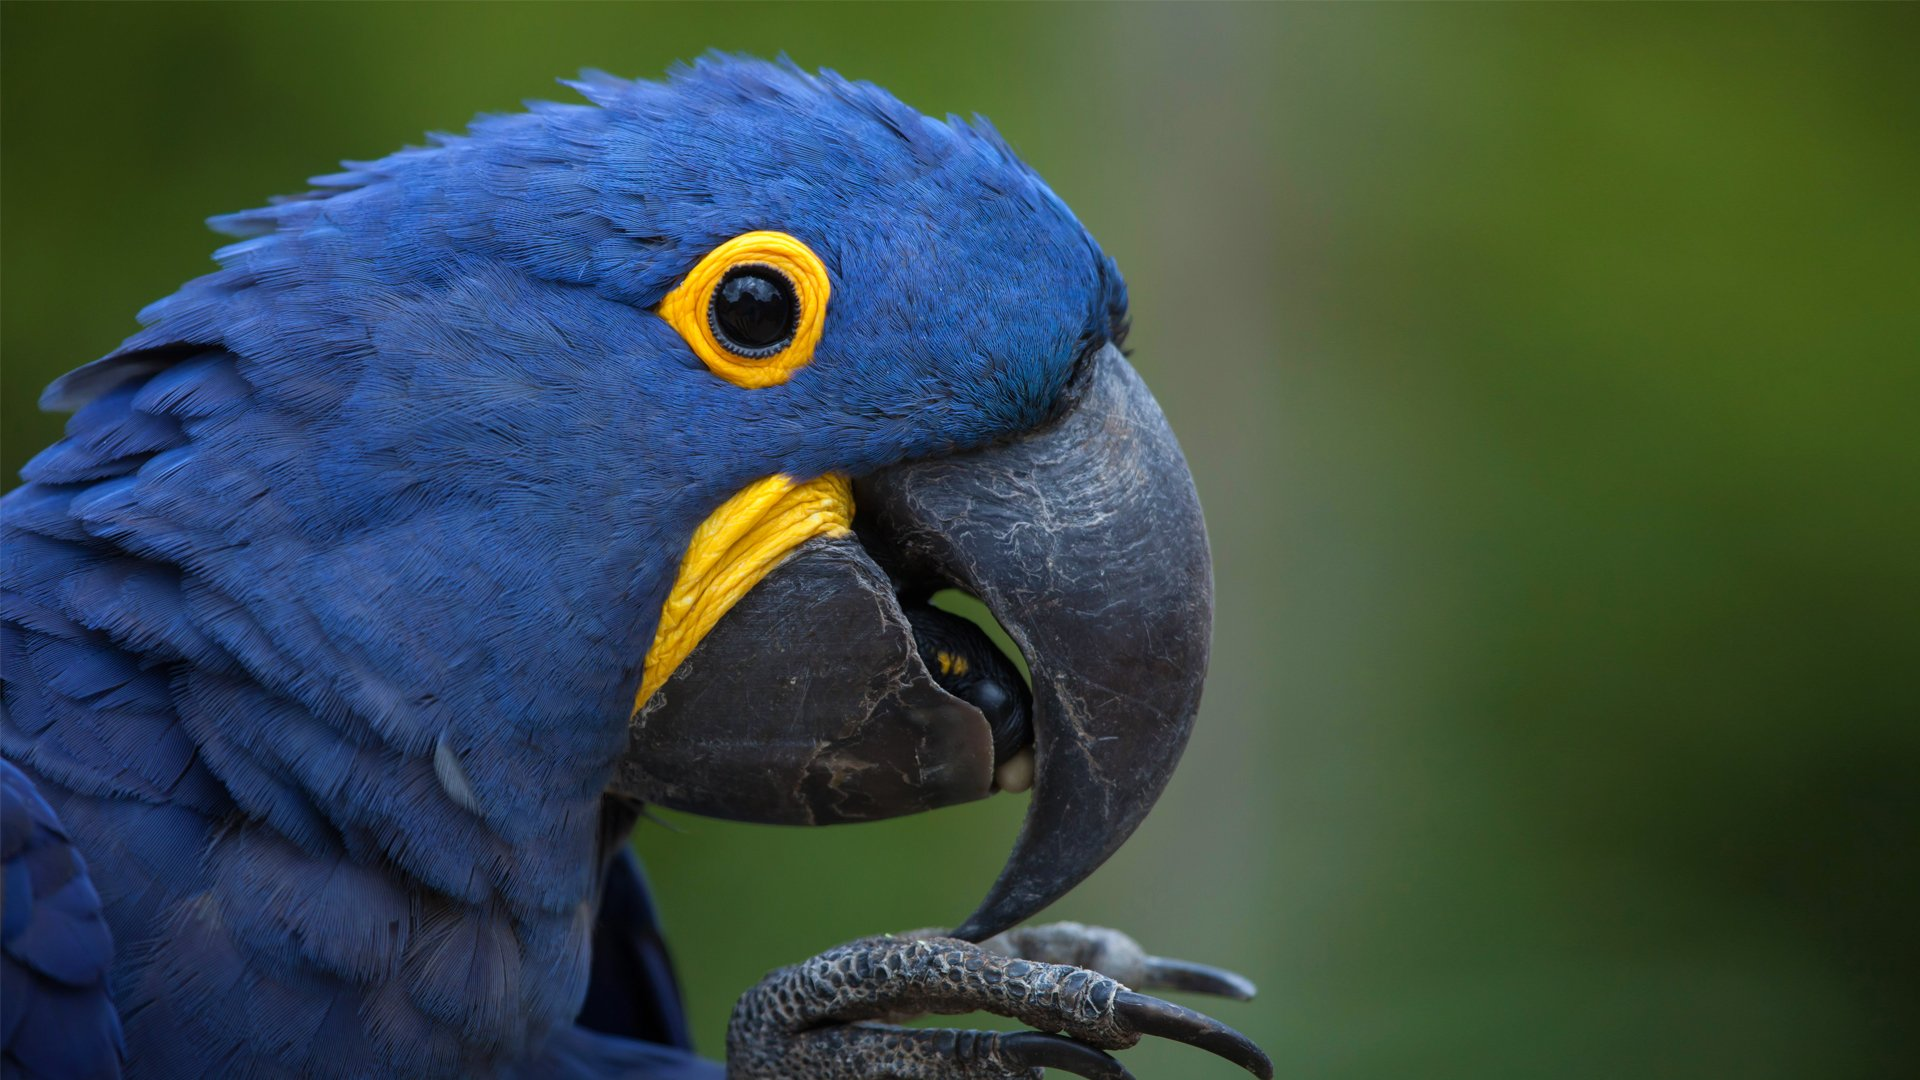 A Day of Wild Macaws